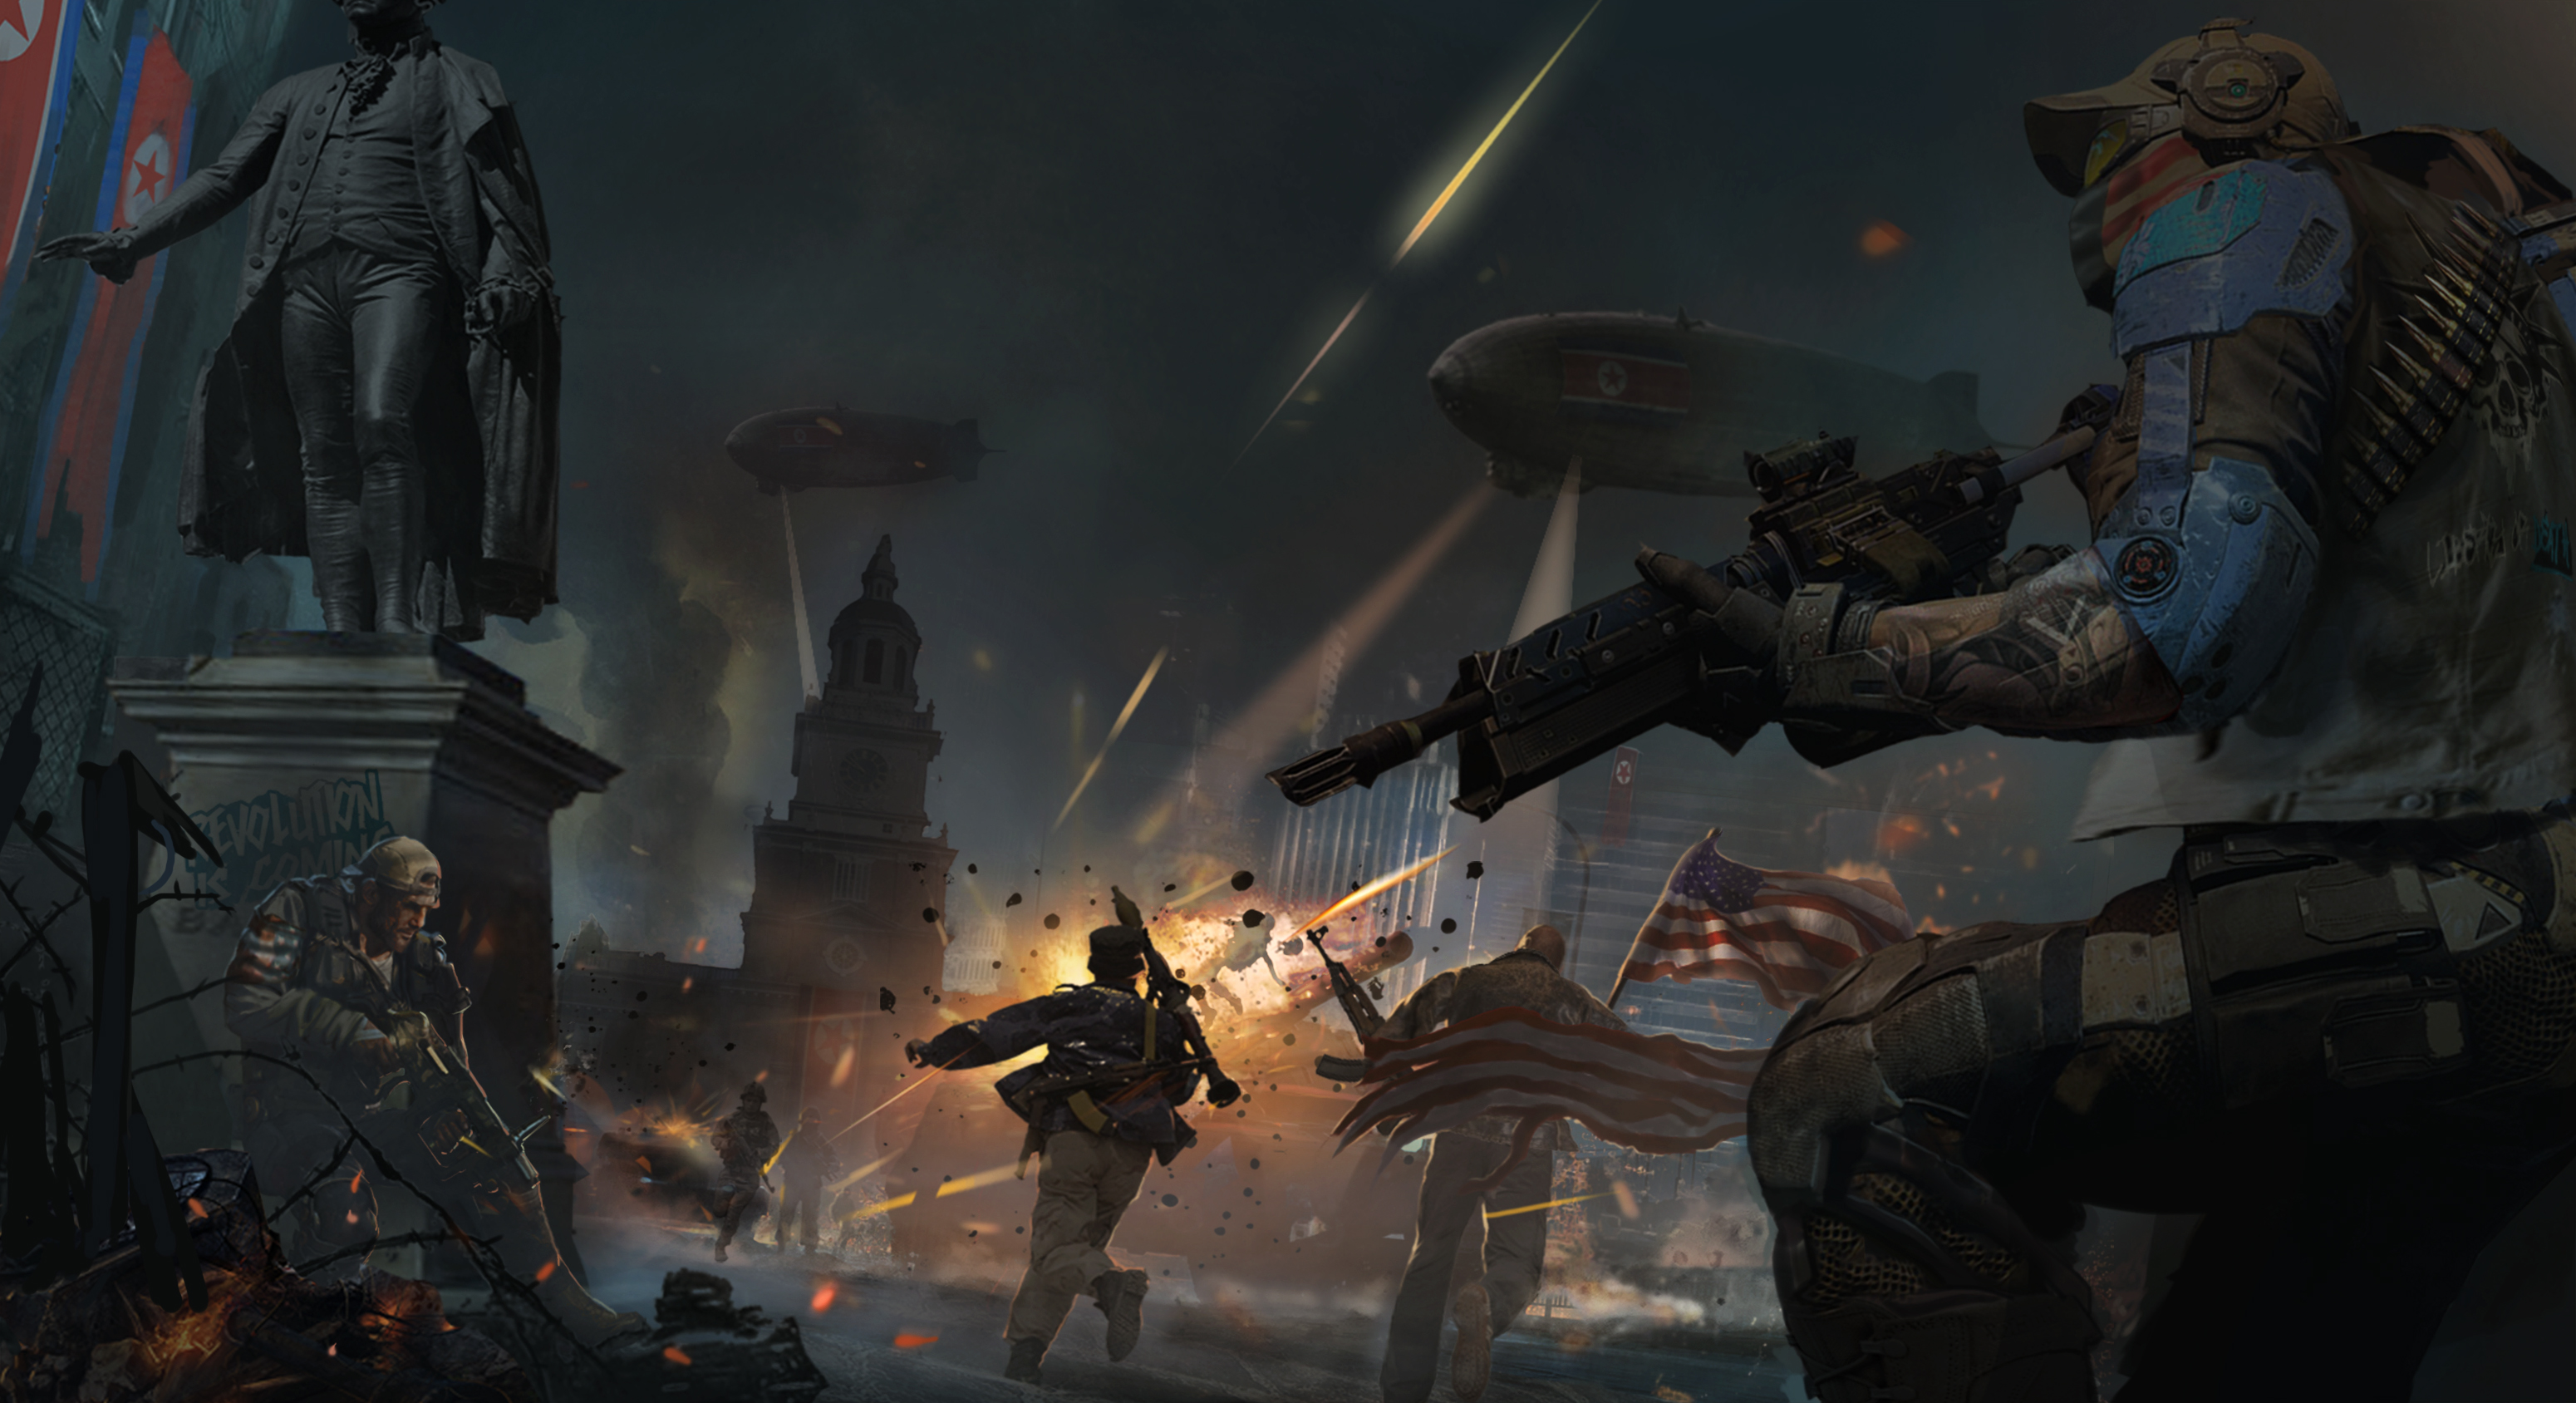 Homefront The Revolution- The day of justice by batevil